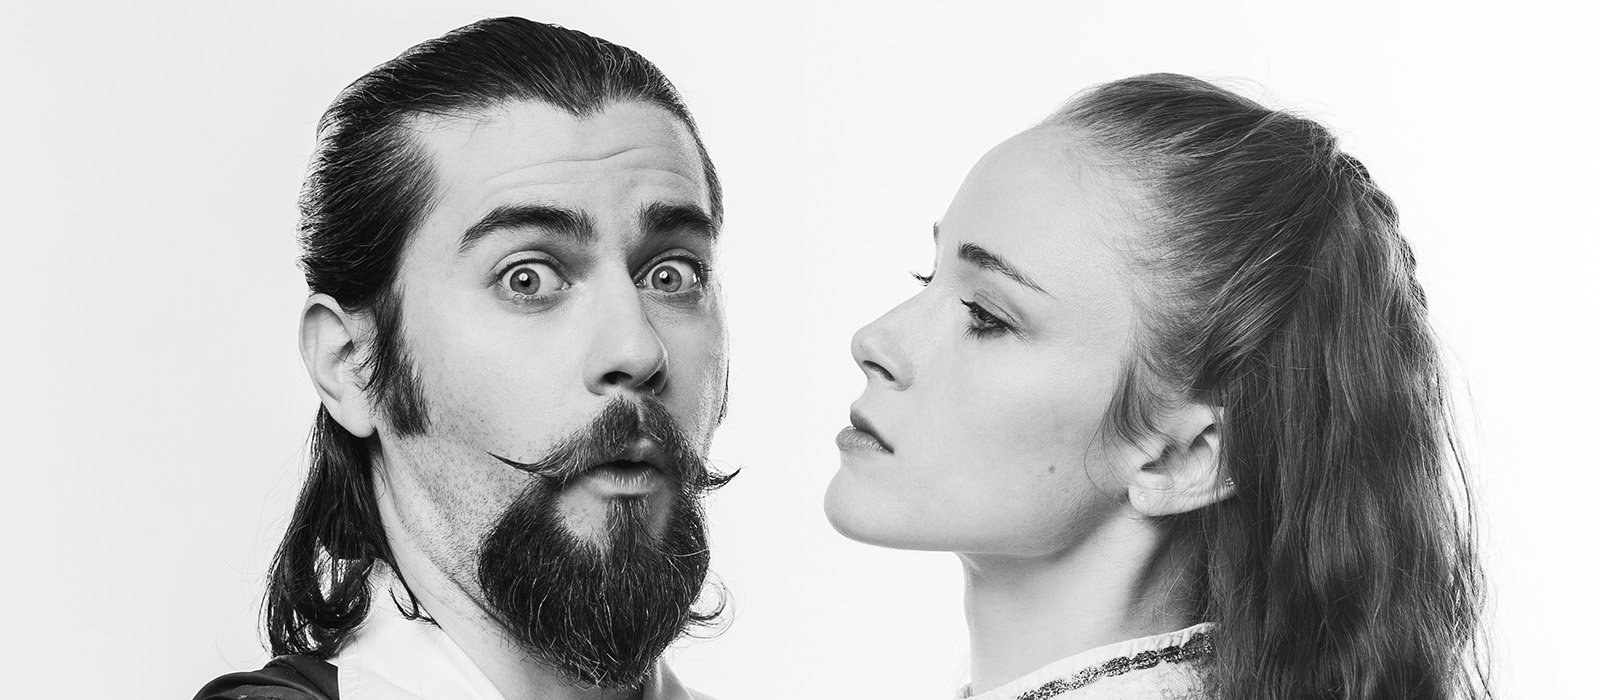 Two performers from the show Swordplay. A man with a waxed mustache and goatee looks with open eyes towards the camera while a woman stares at him very closely